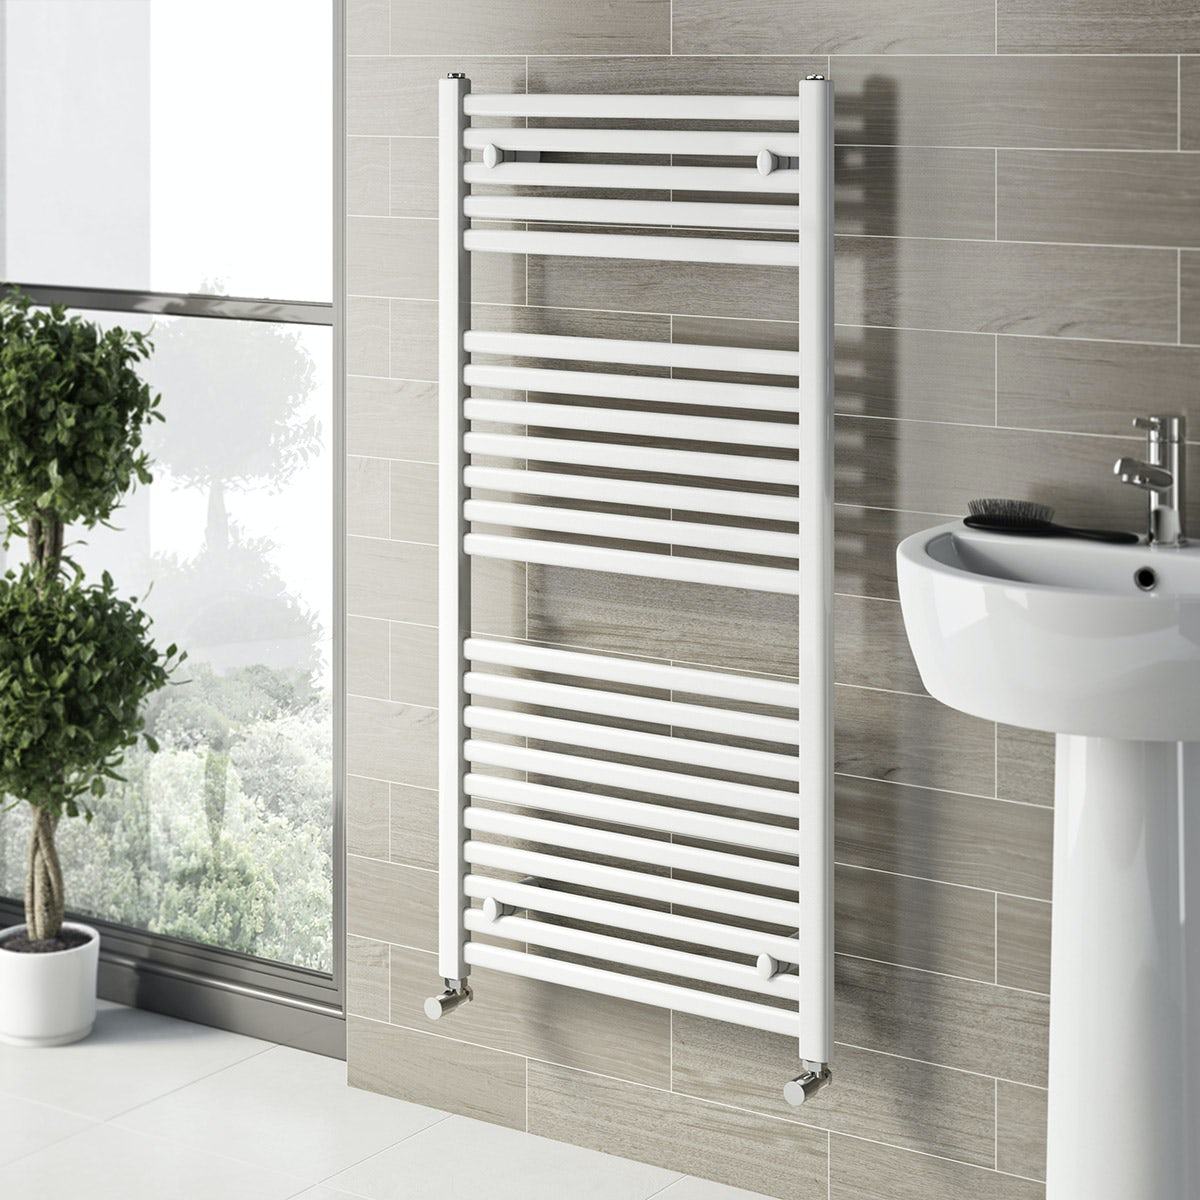 free delivery white heated towel rail x 600 - Heated Towel Rack